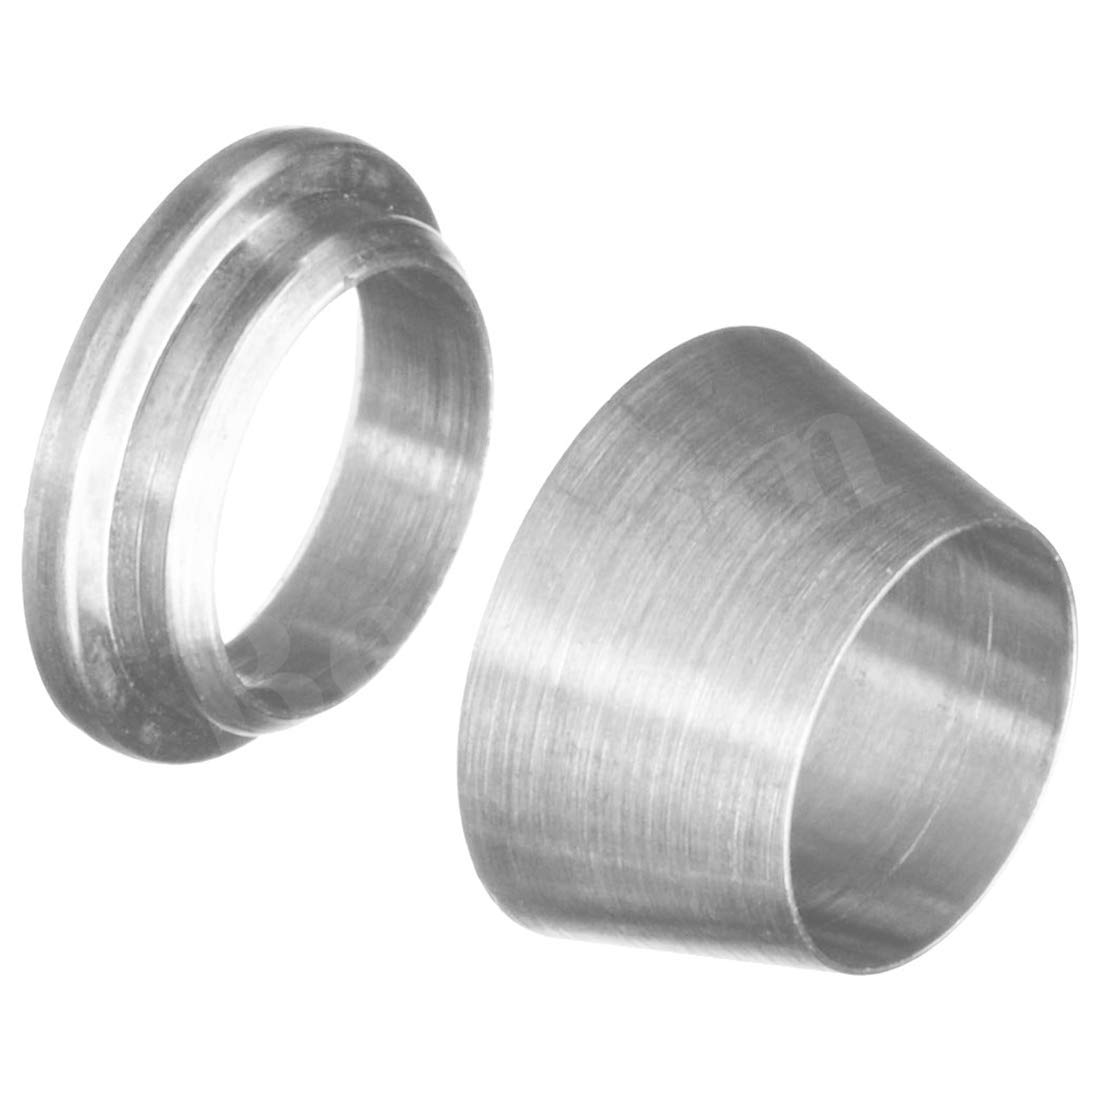 Beduan 304 Stainless Steel Compression Fitting Ferrule Sleeve 1//4 Tube OD Double Ferrule Ring Tubing Fitting(Pack of 10